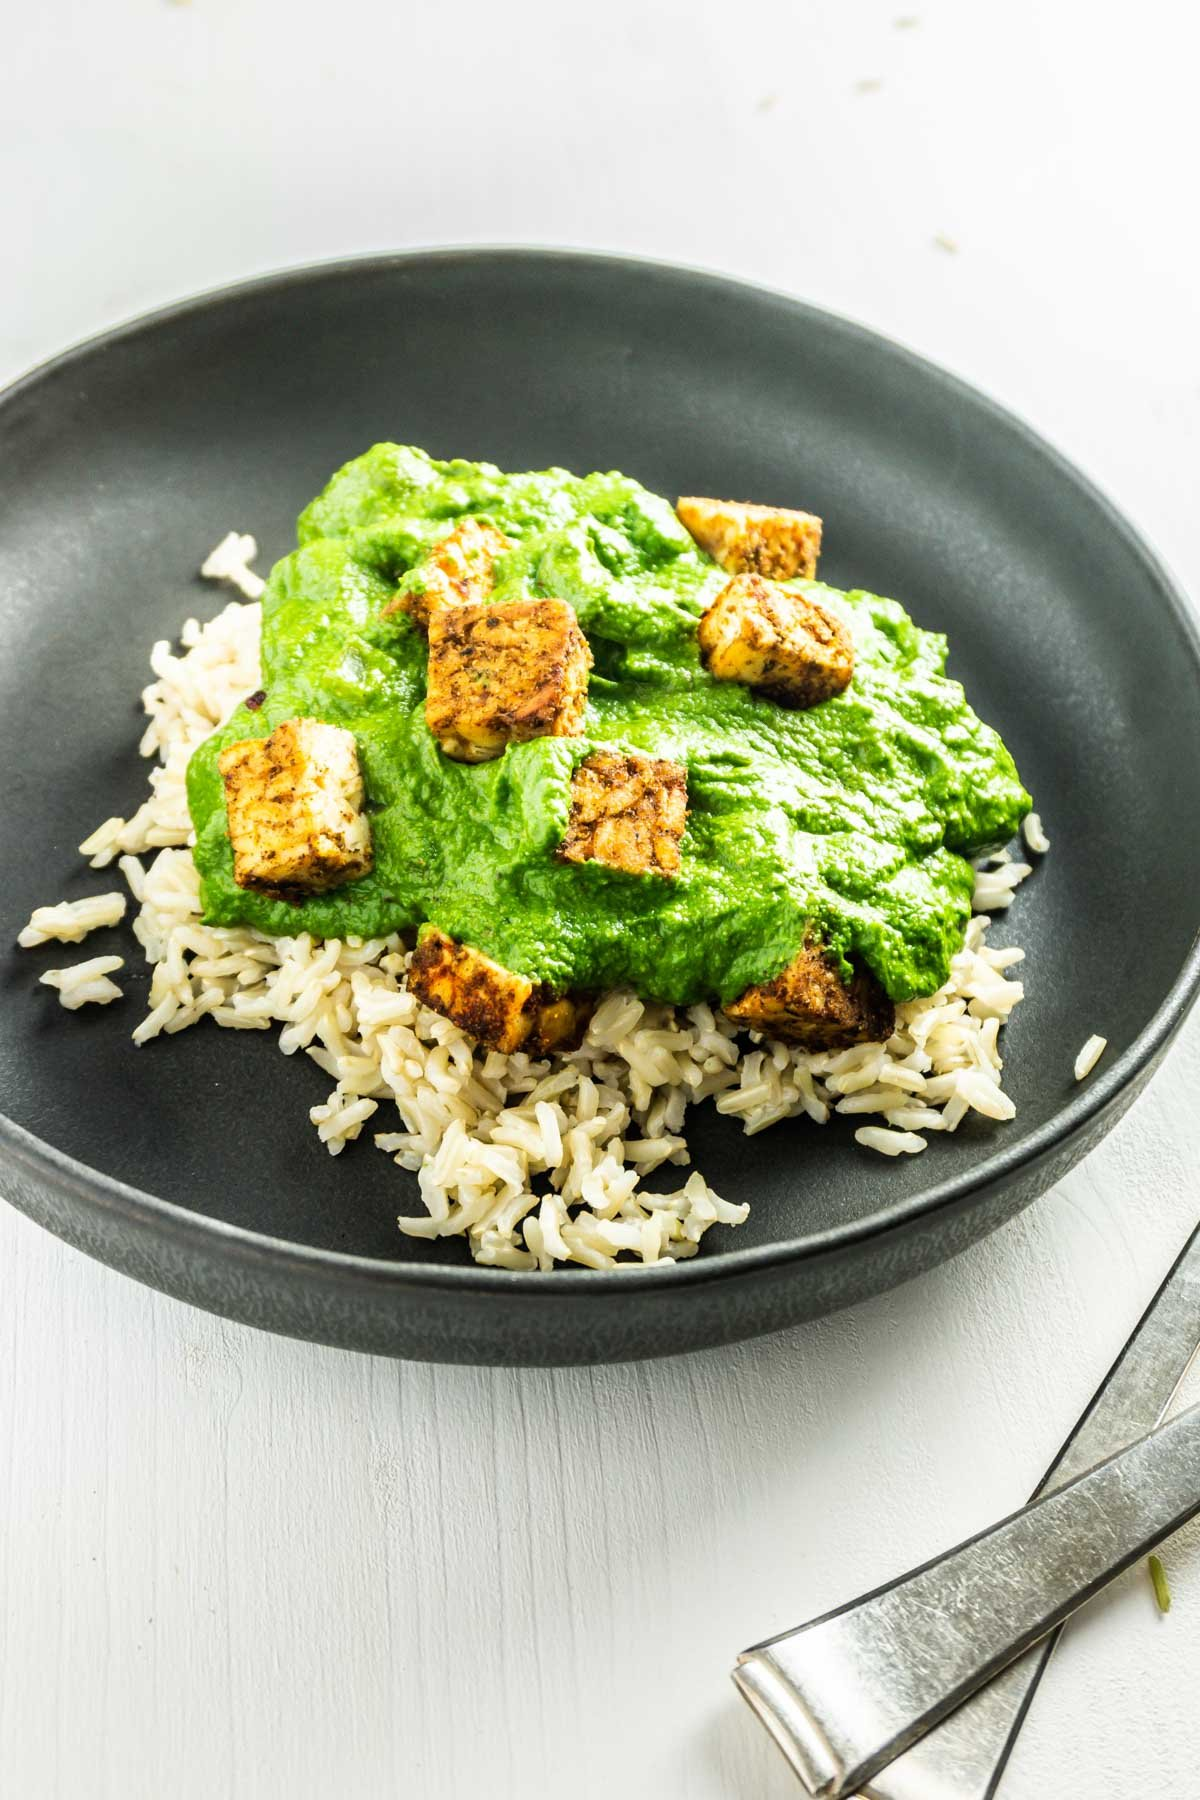 Vegan Palak Paneer on a plate with cutlery